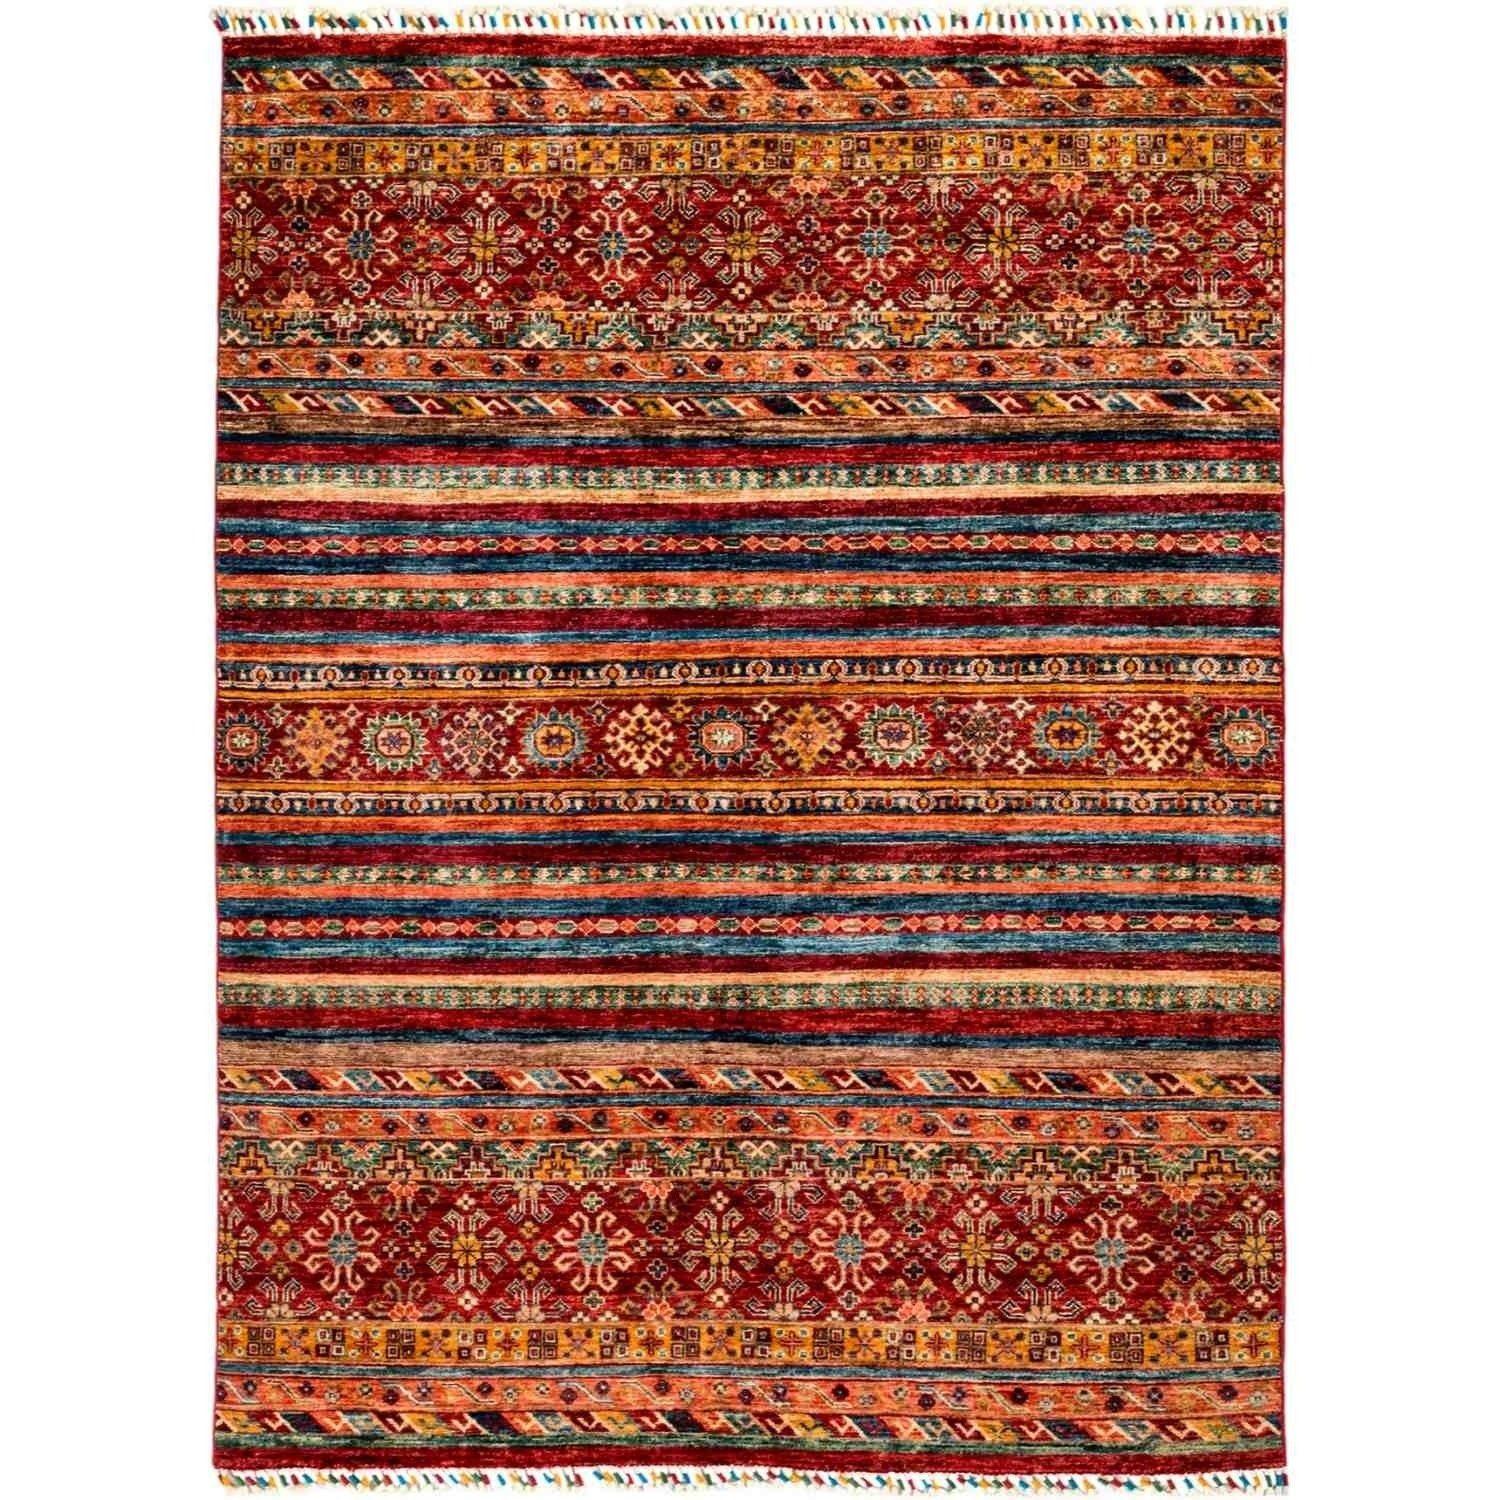 Tribal Hand Knotted Area Rug 5 2 X 6 10 5 2 X 6 10